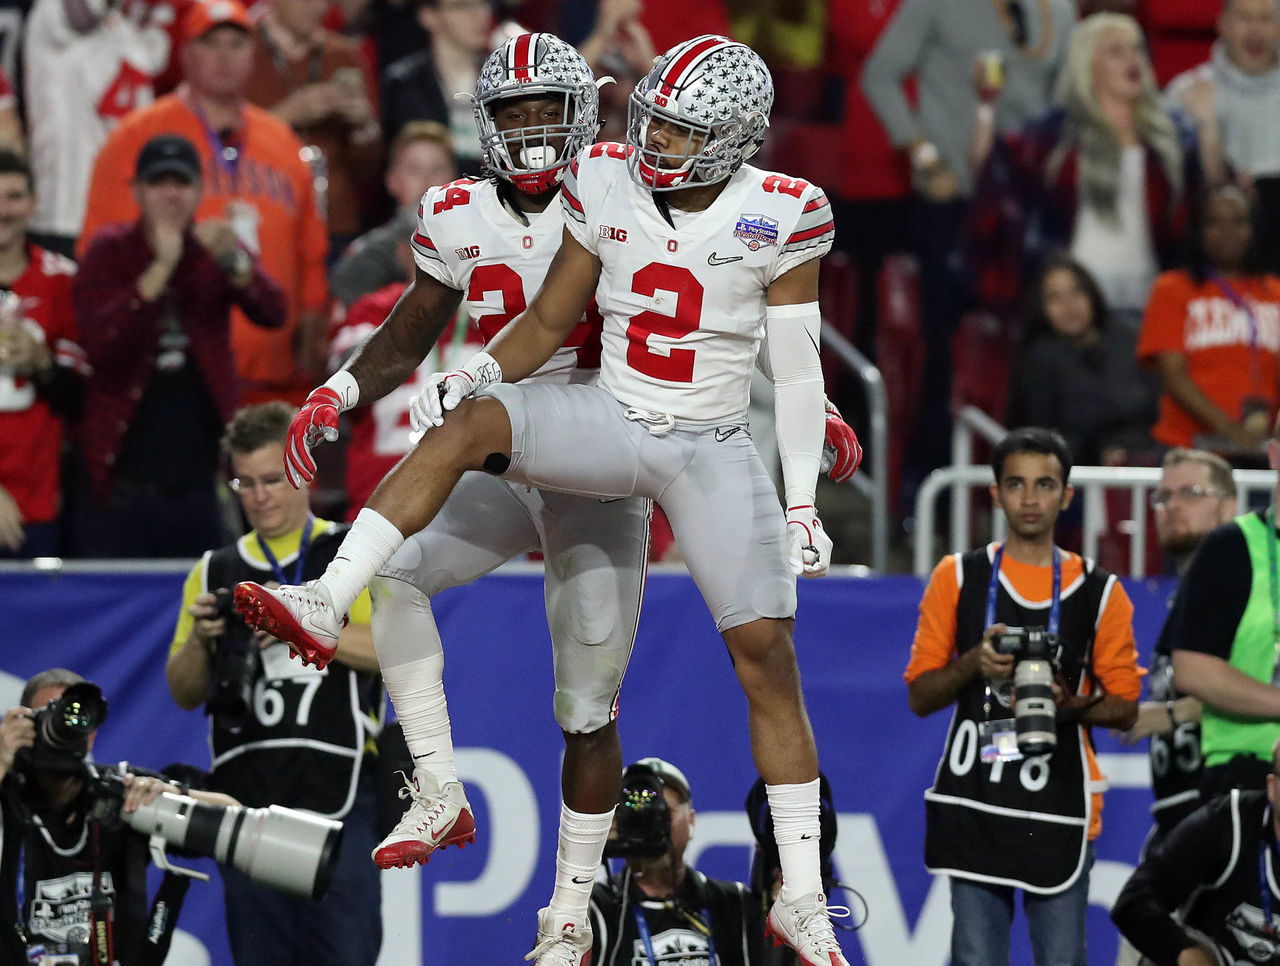 Cropped 2017 01 01t014349z 199262380 nocid rtrmadp 3 ncaa football fiesta bowl ohio state vs clemson